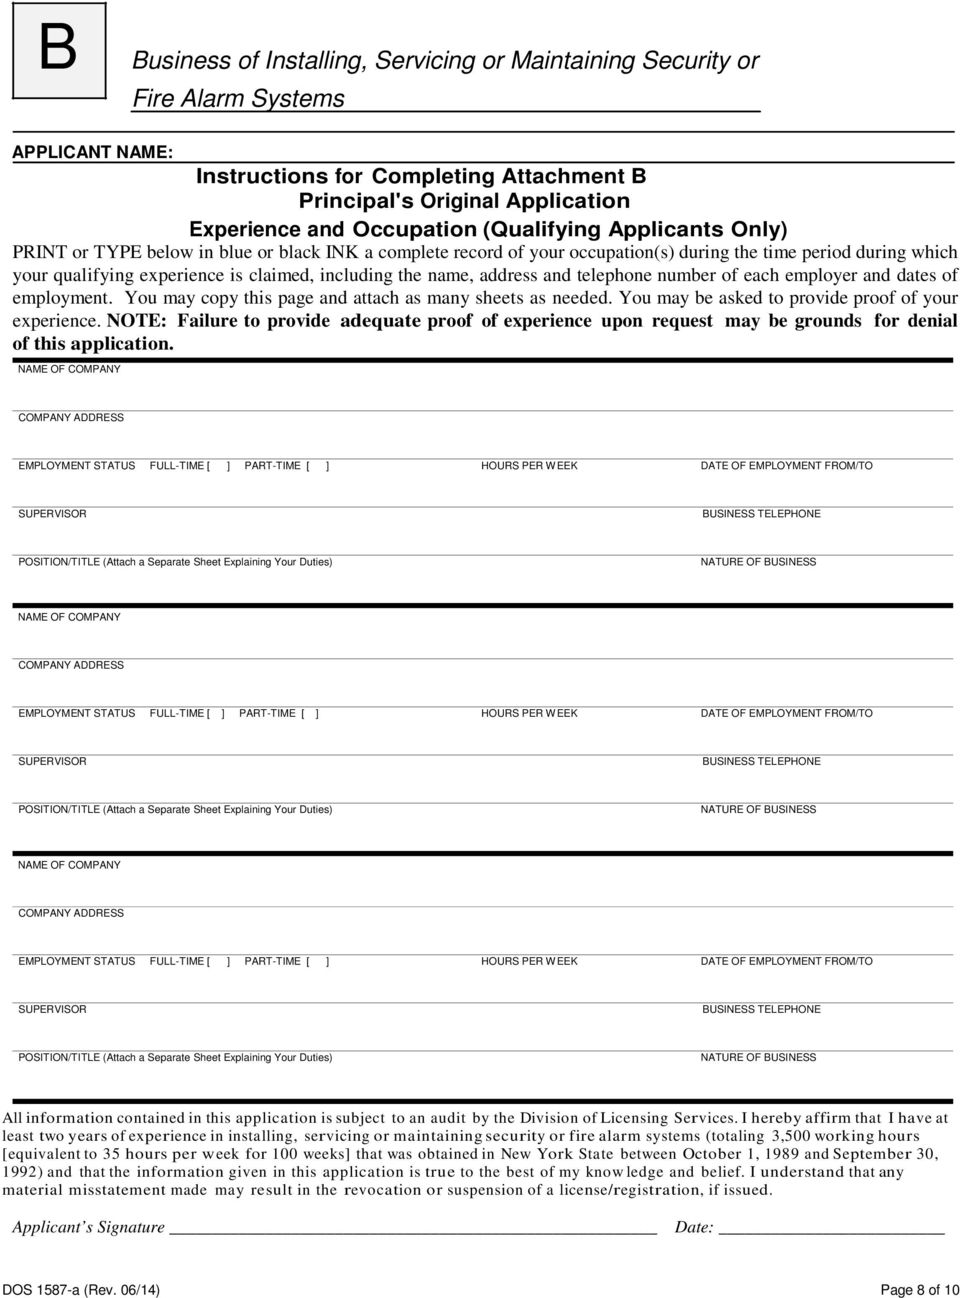 name, address and telephone number of each employer and dates of employment. You may copy this page and attach as many sheets as needed. You may be asked to provide proof of your experience.